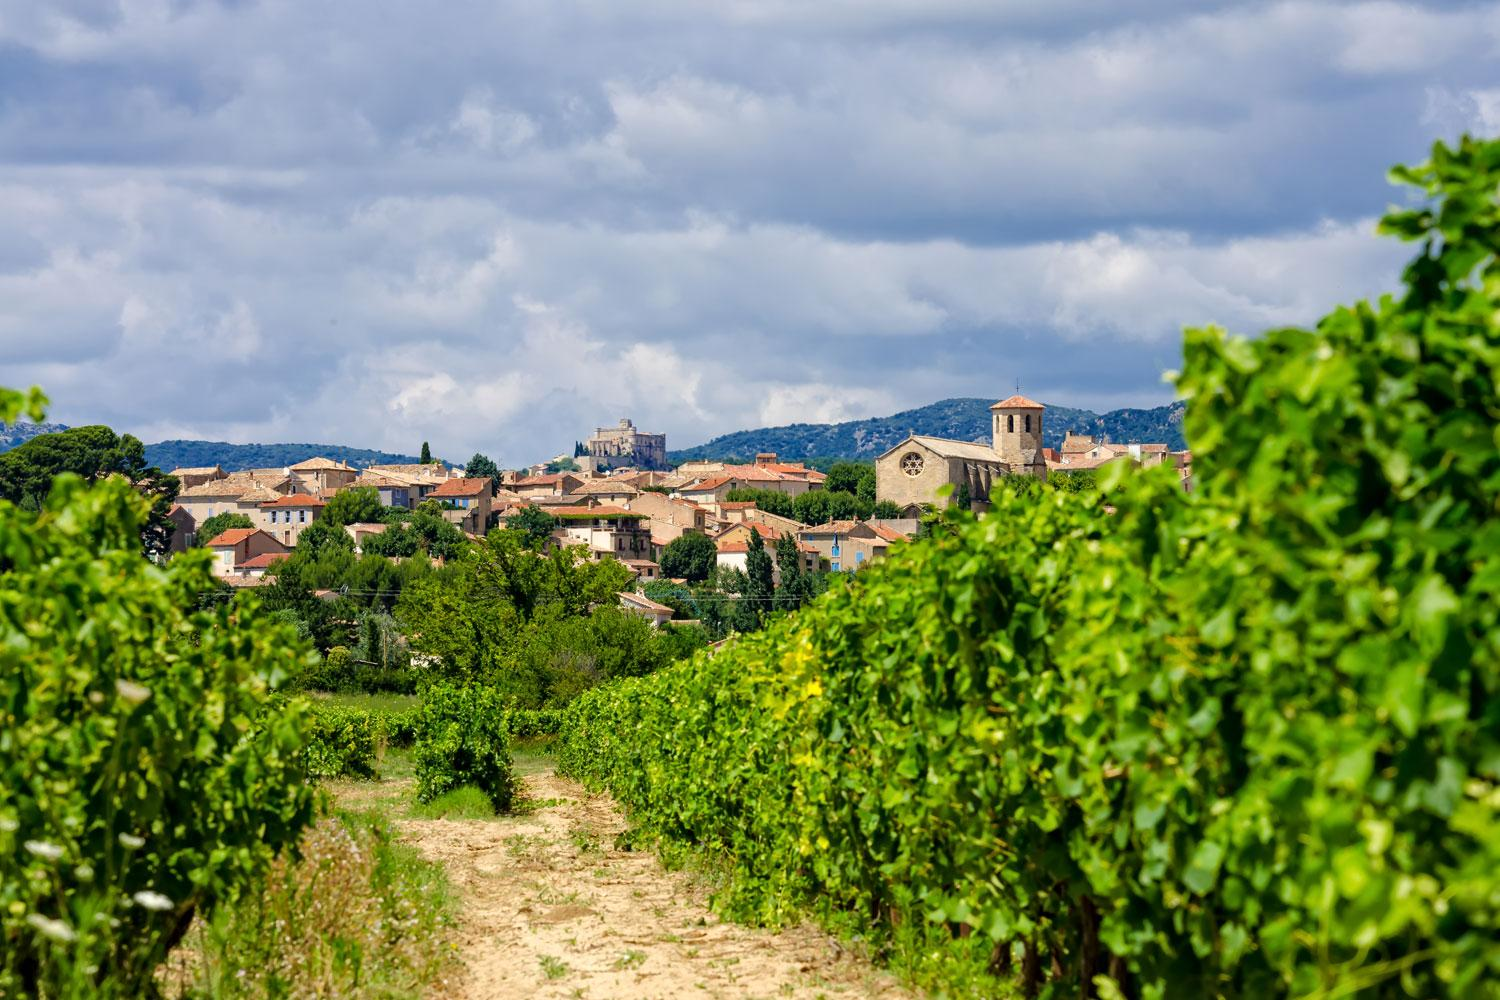 Hill top villages and vineyards in the Luberon and the Vaucluse